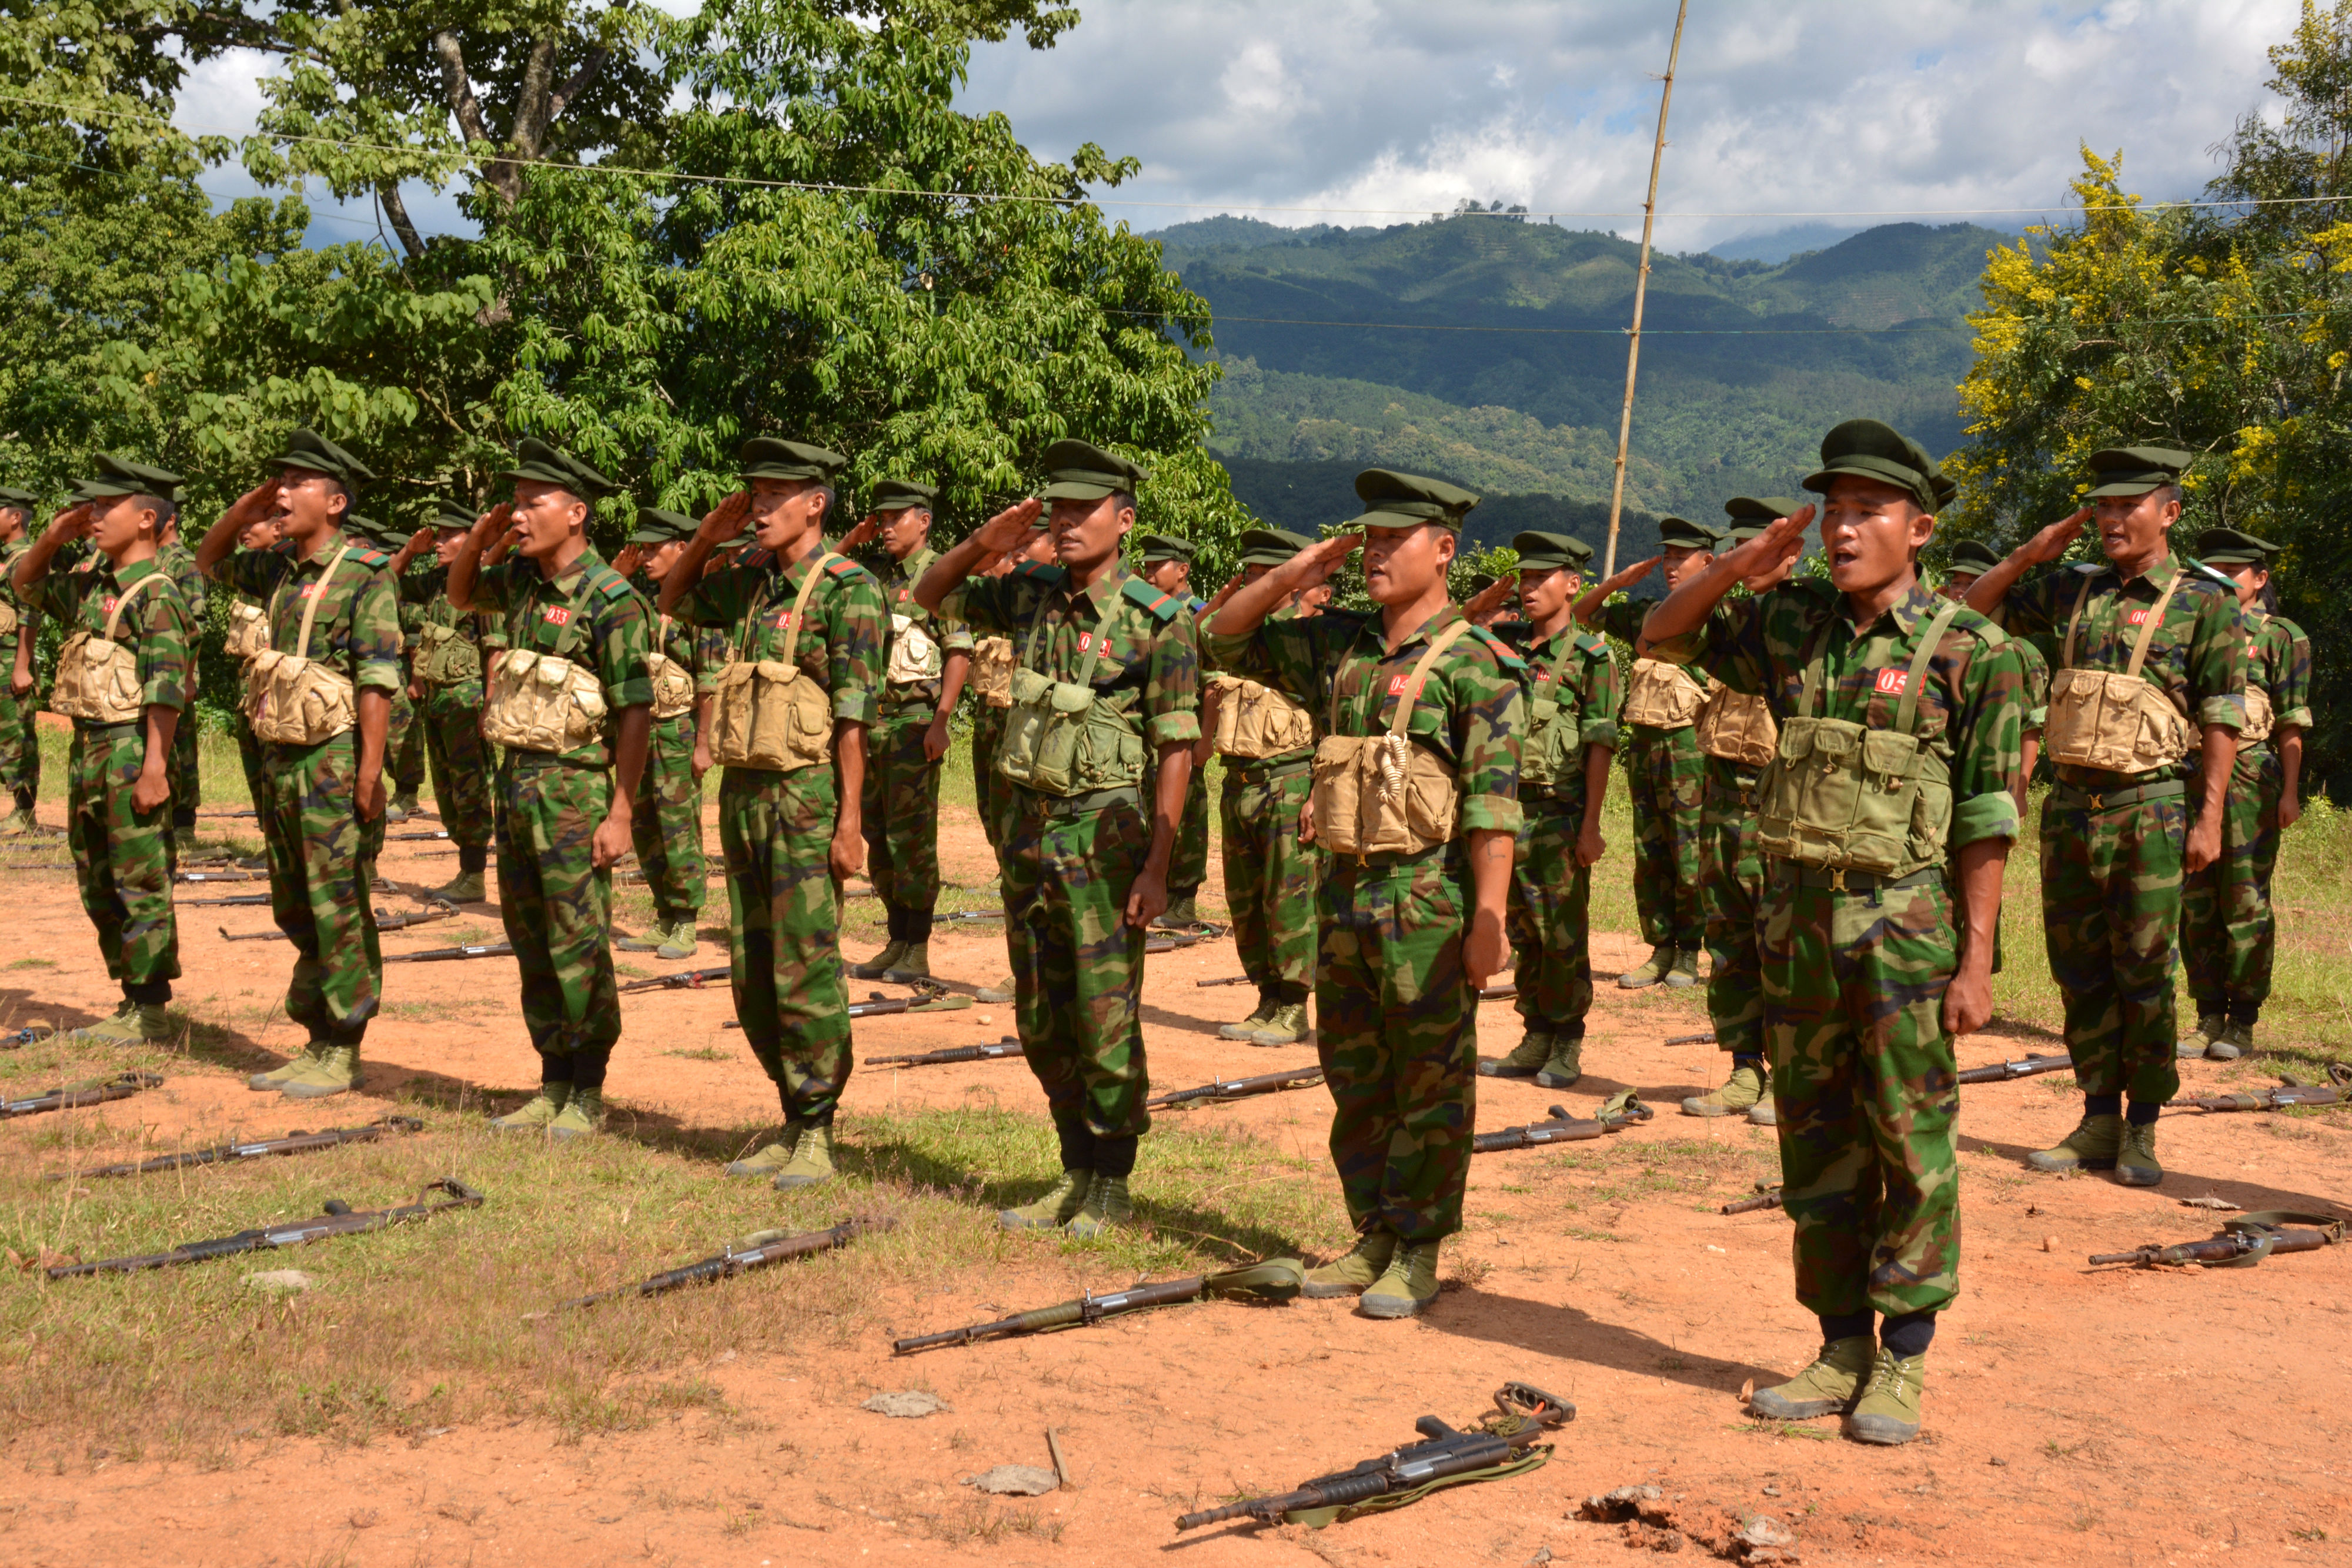 Kachin Independence Army (KIA) cadets follow drills at a training school in the Burmese town of Laiza, on the border with China